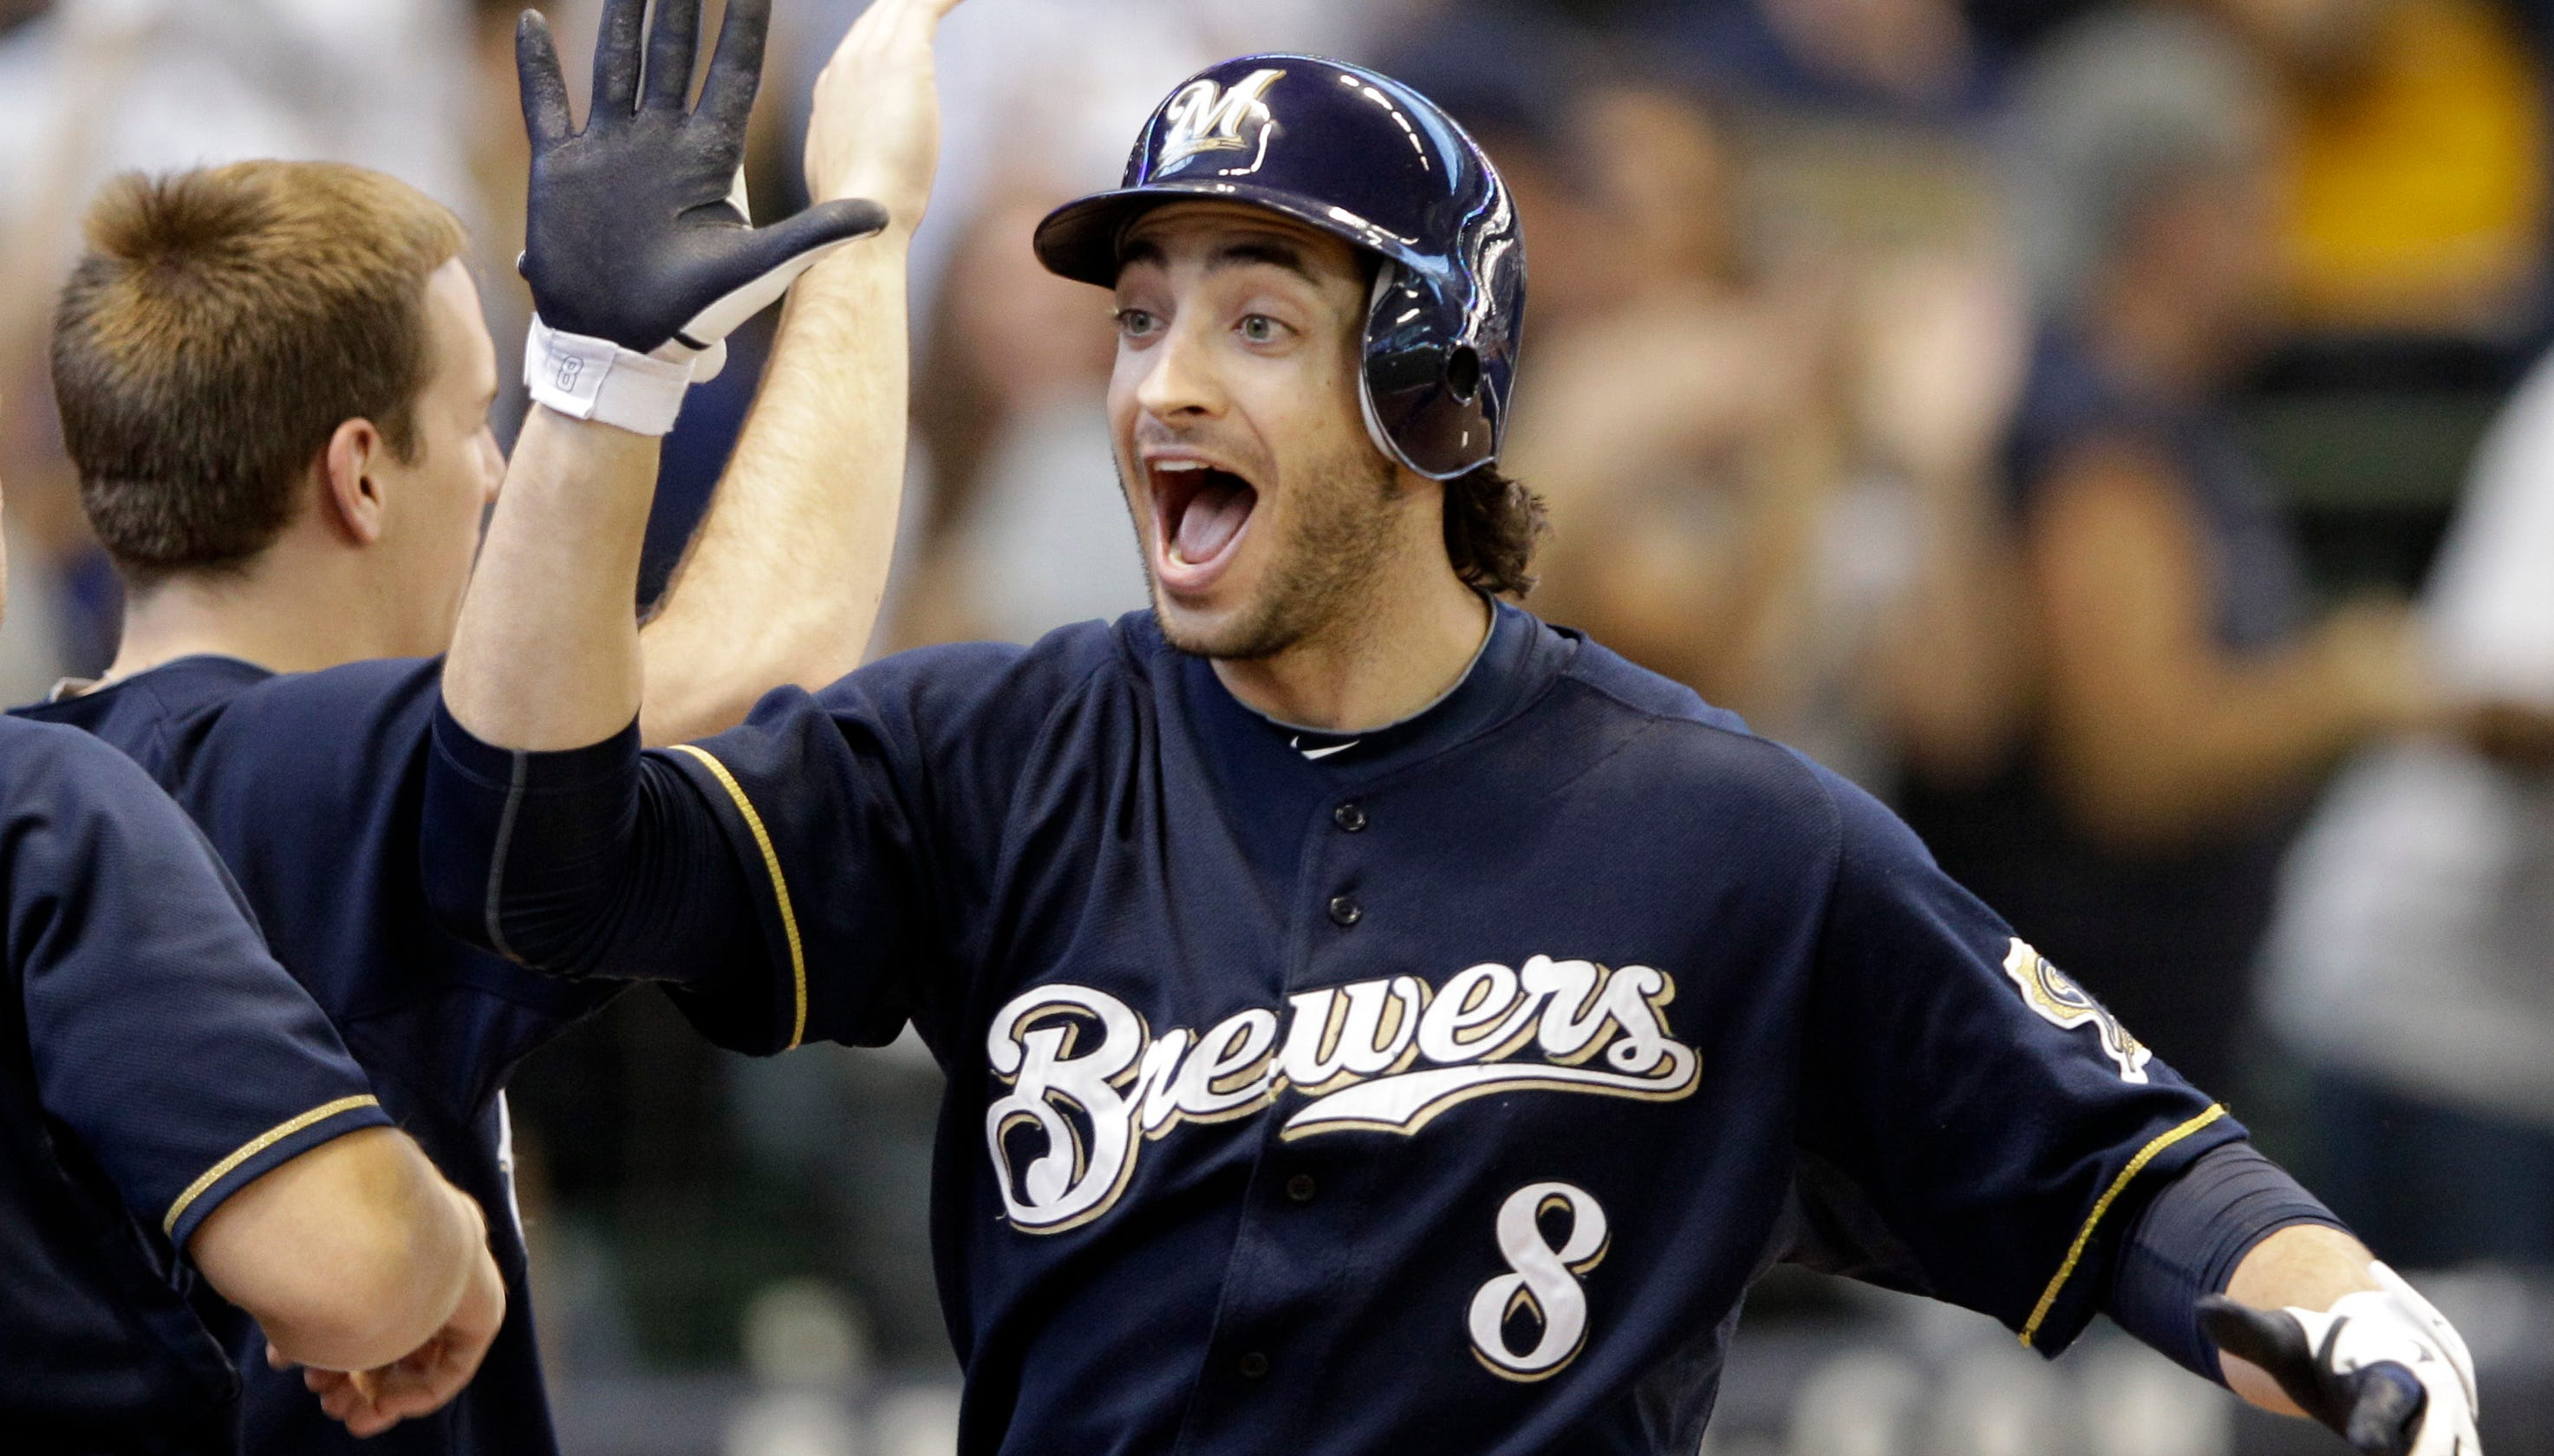 c3b03517bc6 Most-hated athletes: Ryan Braun to Michael Floyd and the Morris twins